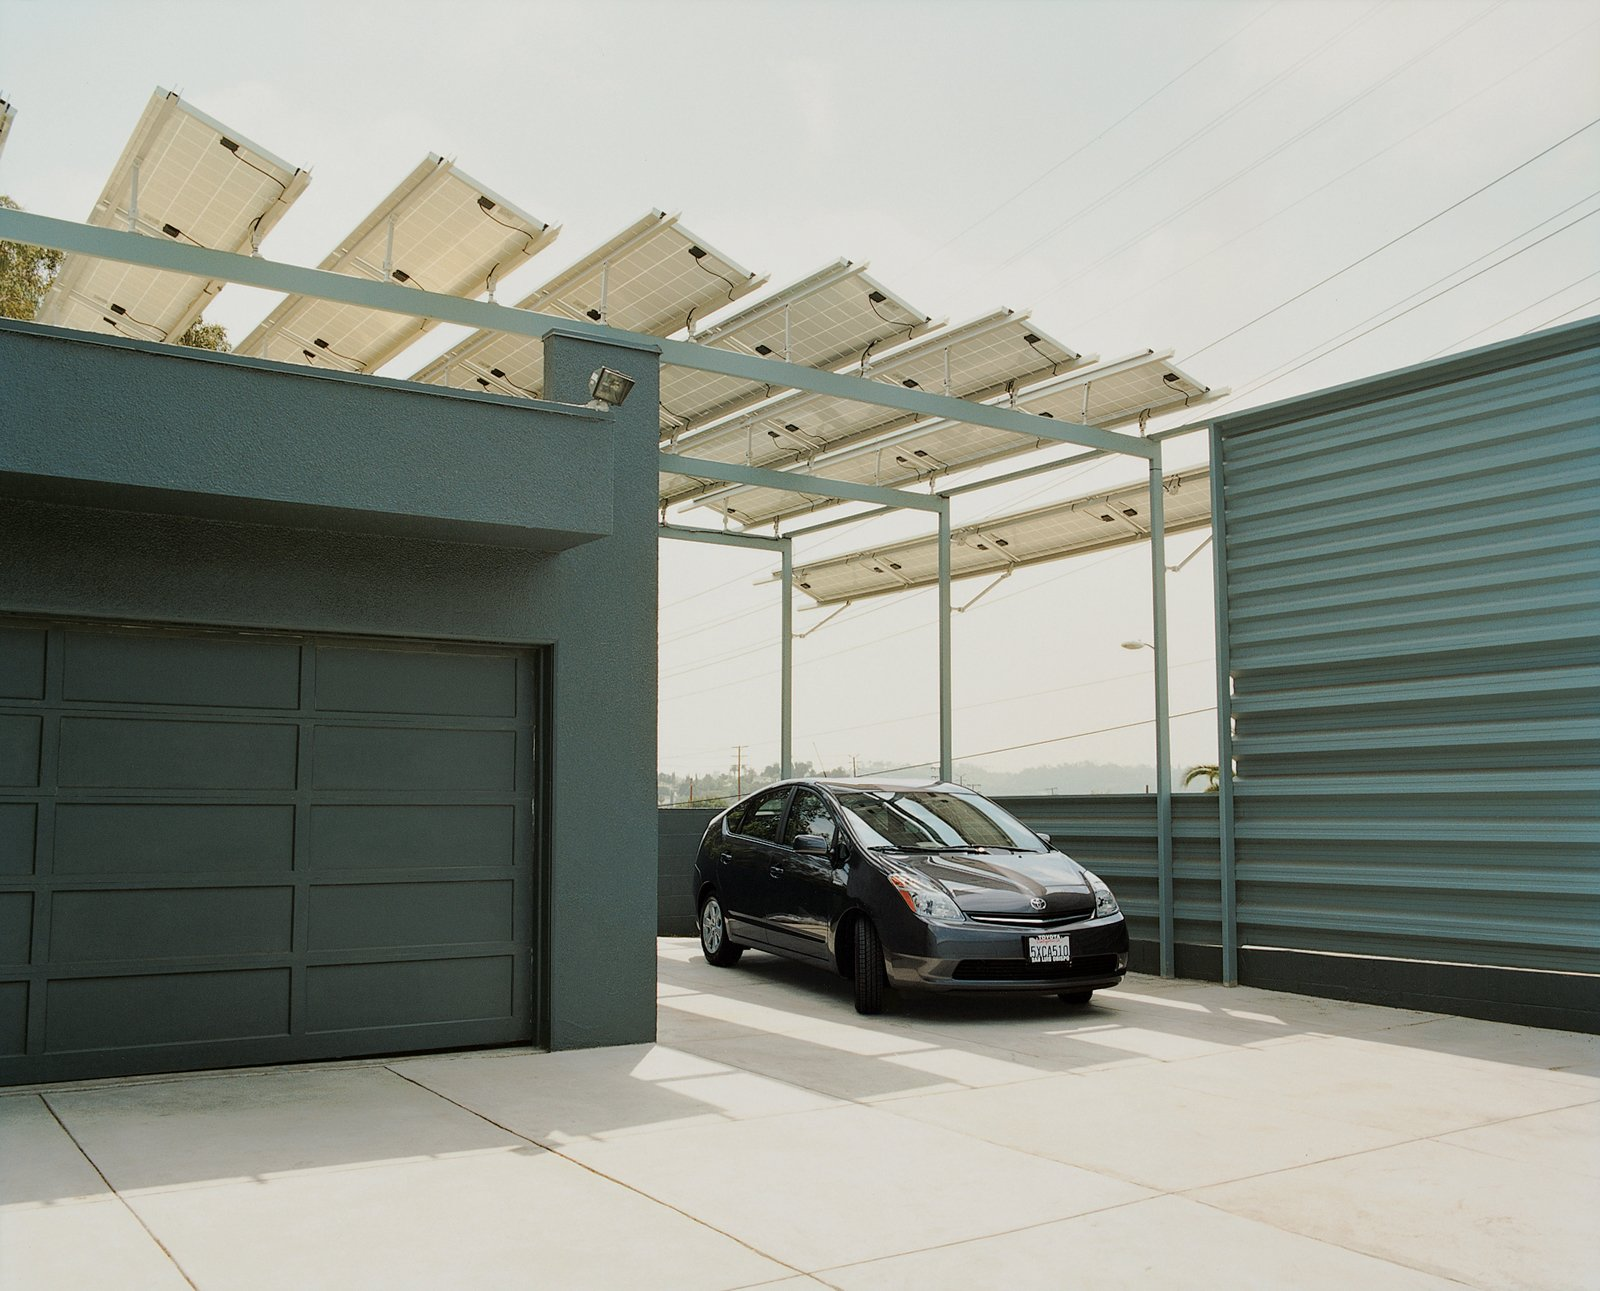 Brill's Prius sits under the solar panels, which supplies the energy for the house's lighting, air-conditioning and hot water.  Photo 6 of 8 in Drumming Up Design